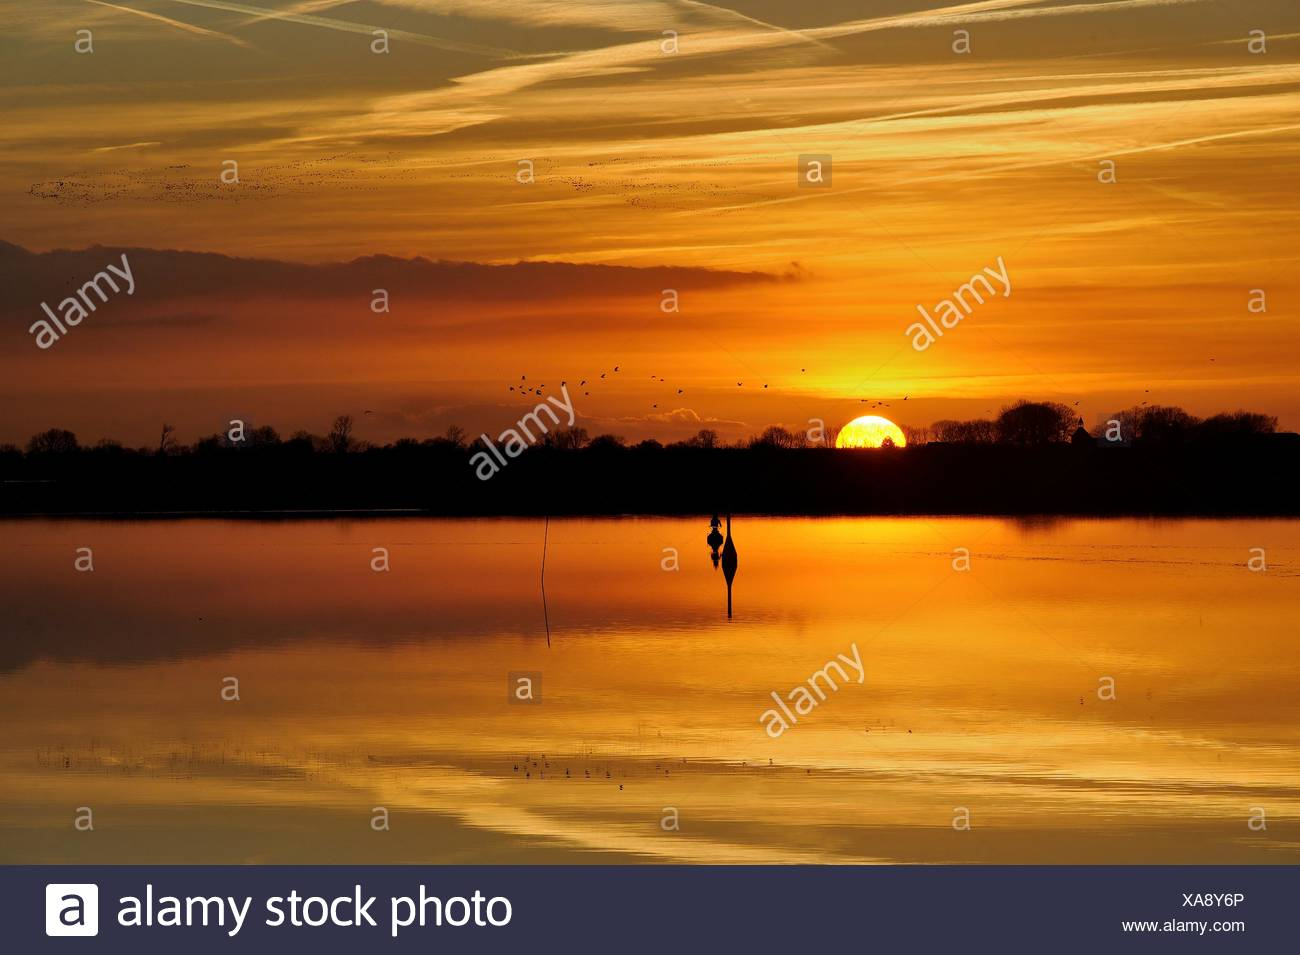 Silhouette of birds flying over river Ems, Leer, Lower Saxony, Germany - Stock Image